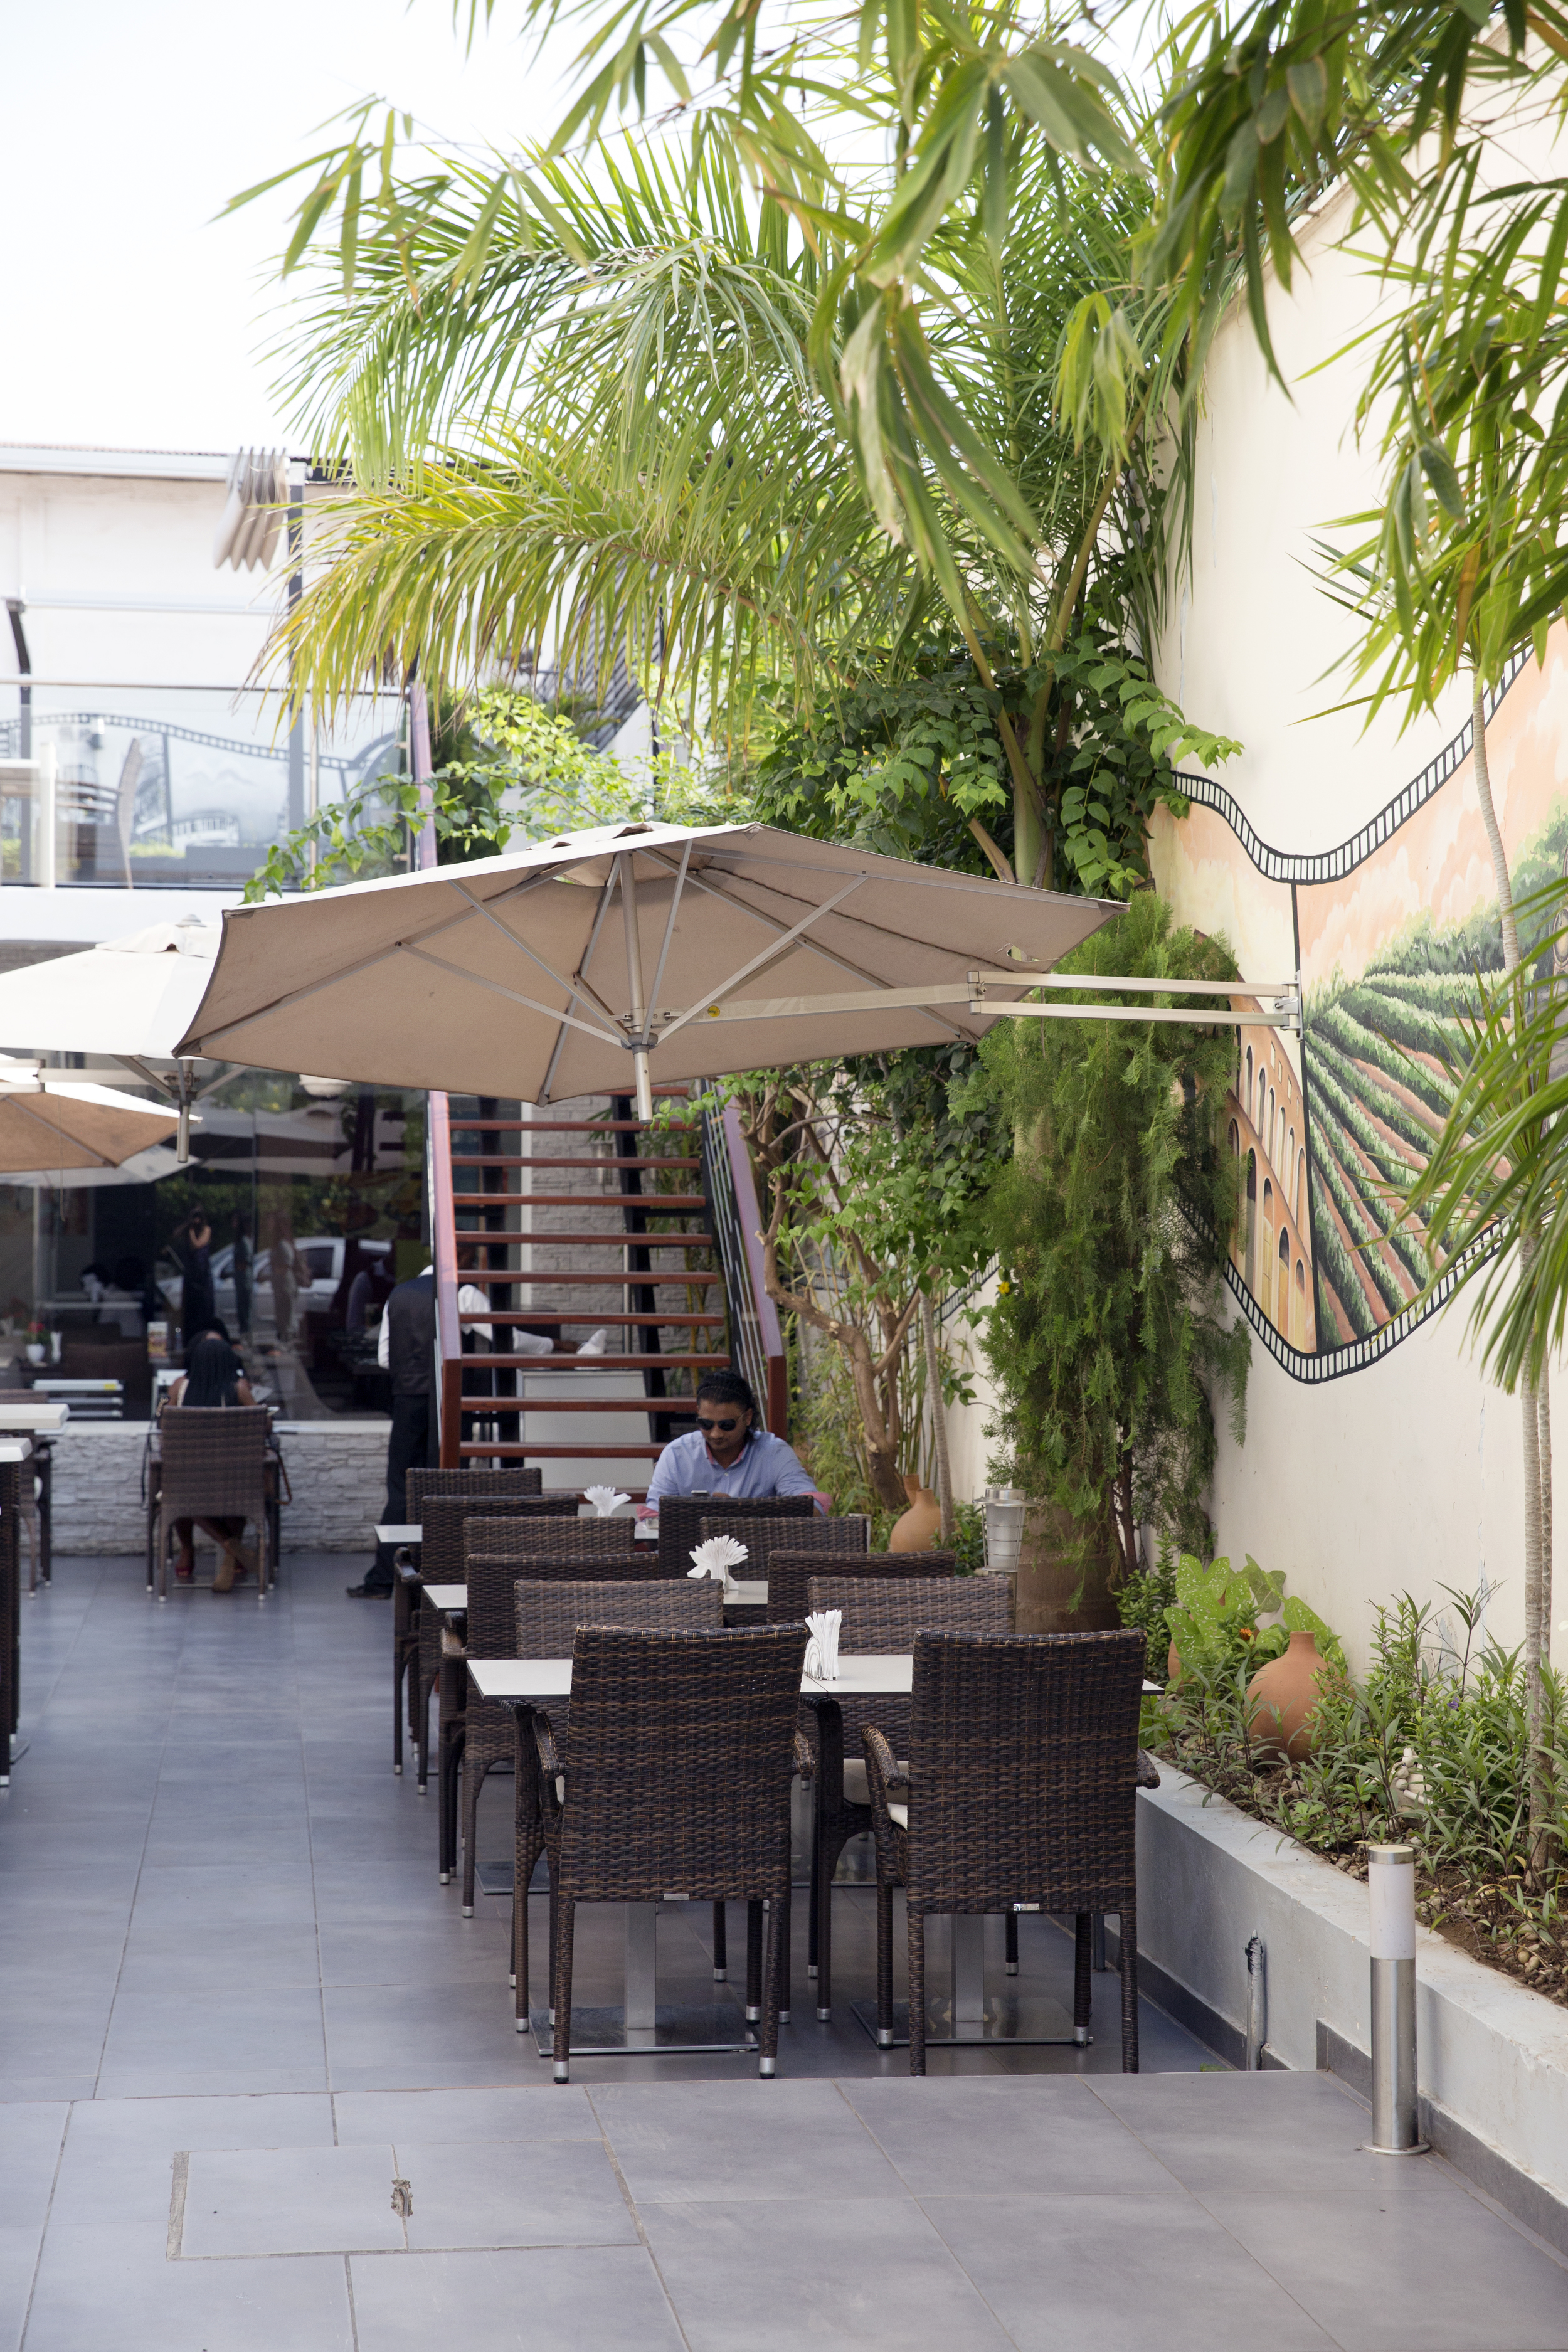 The outside patio of La Piazza.